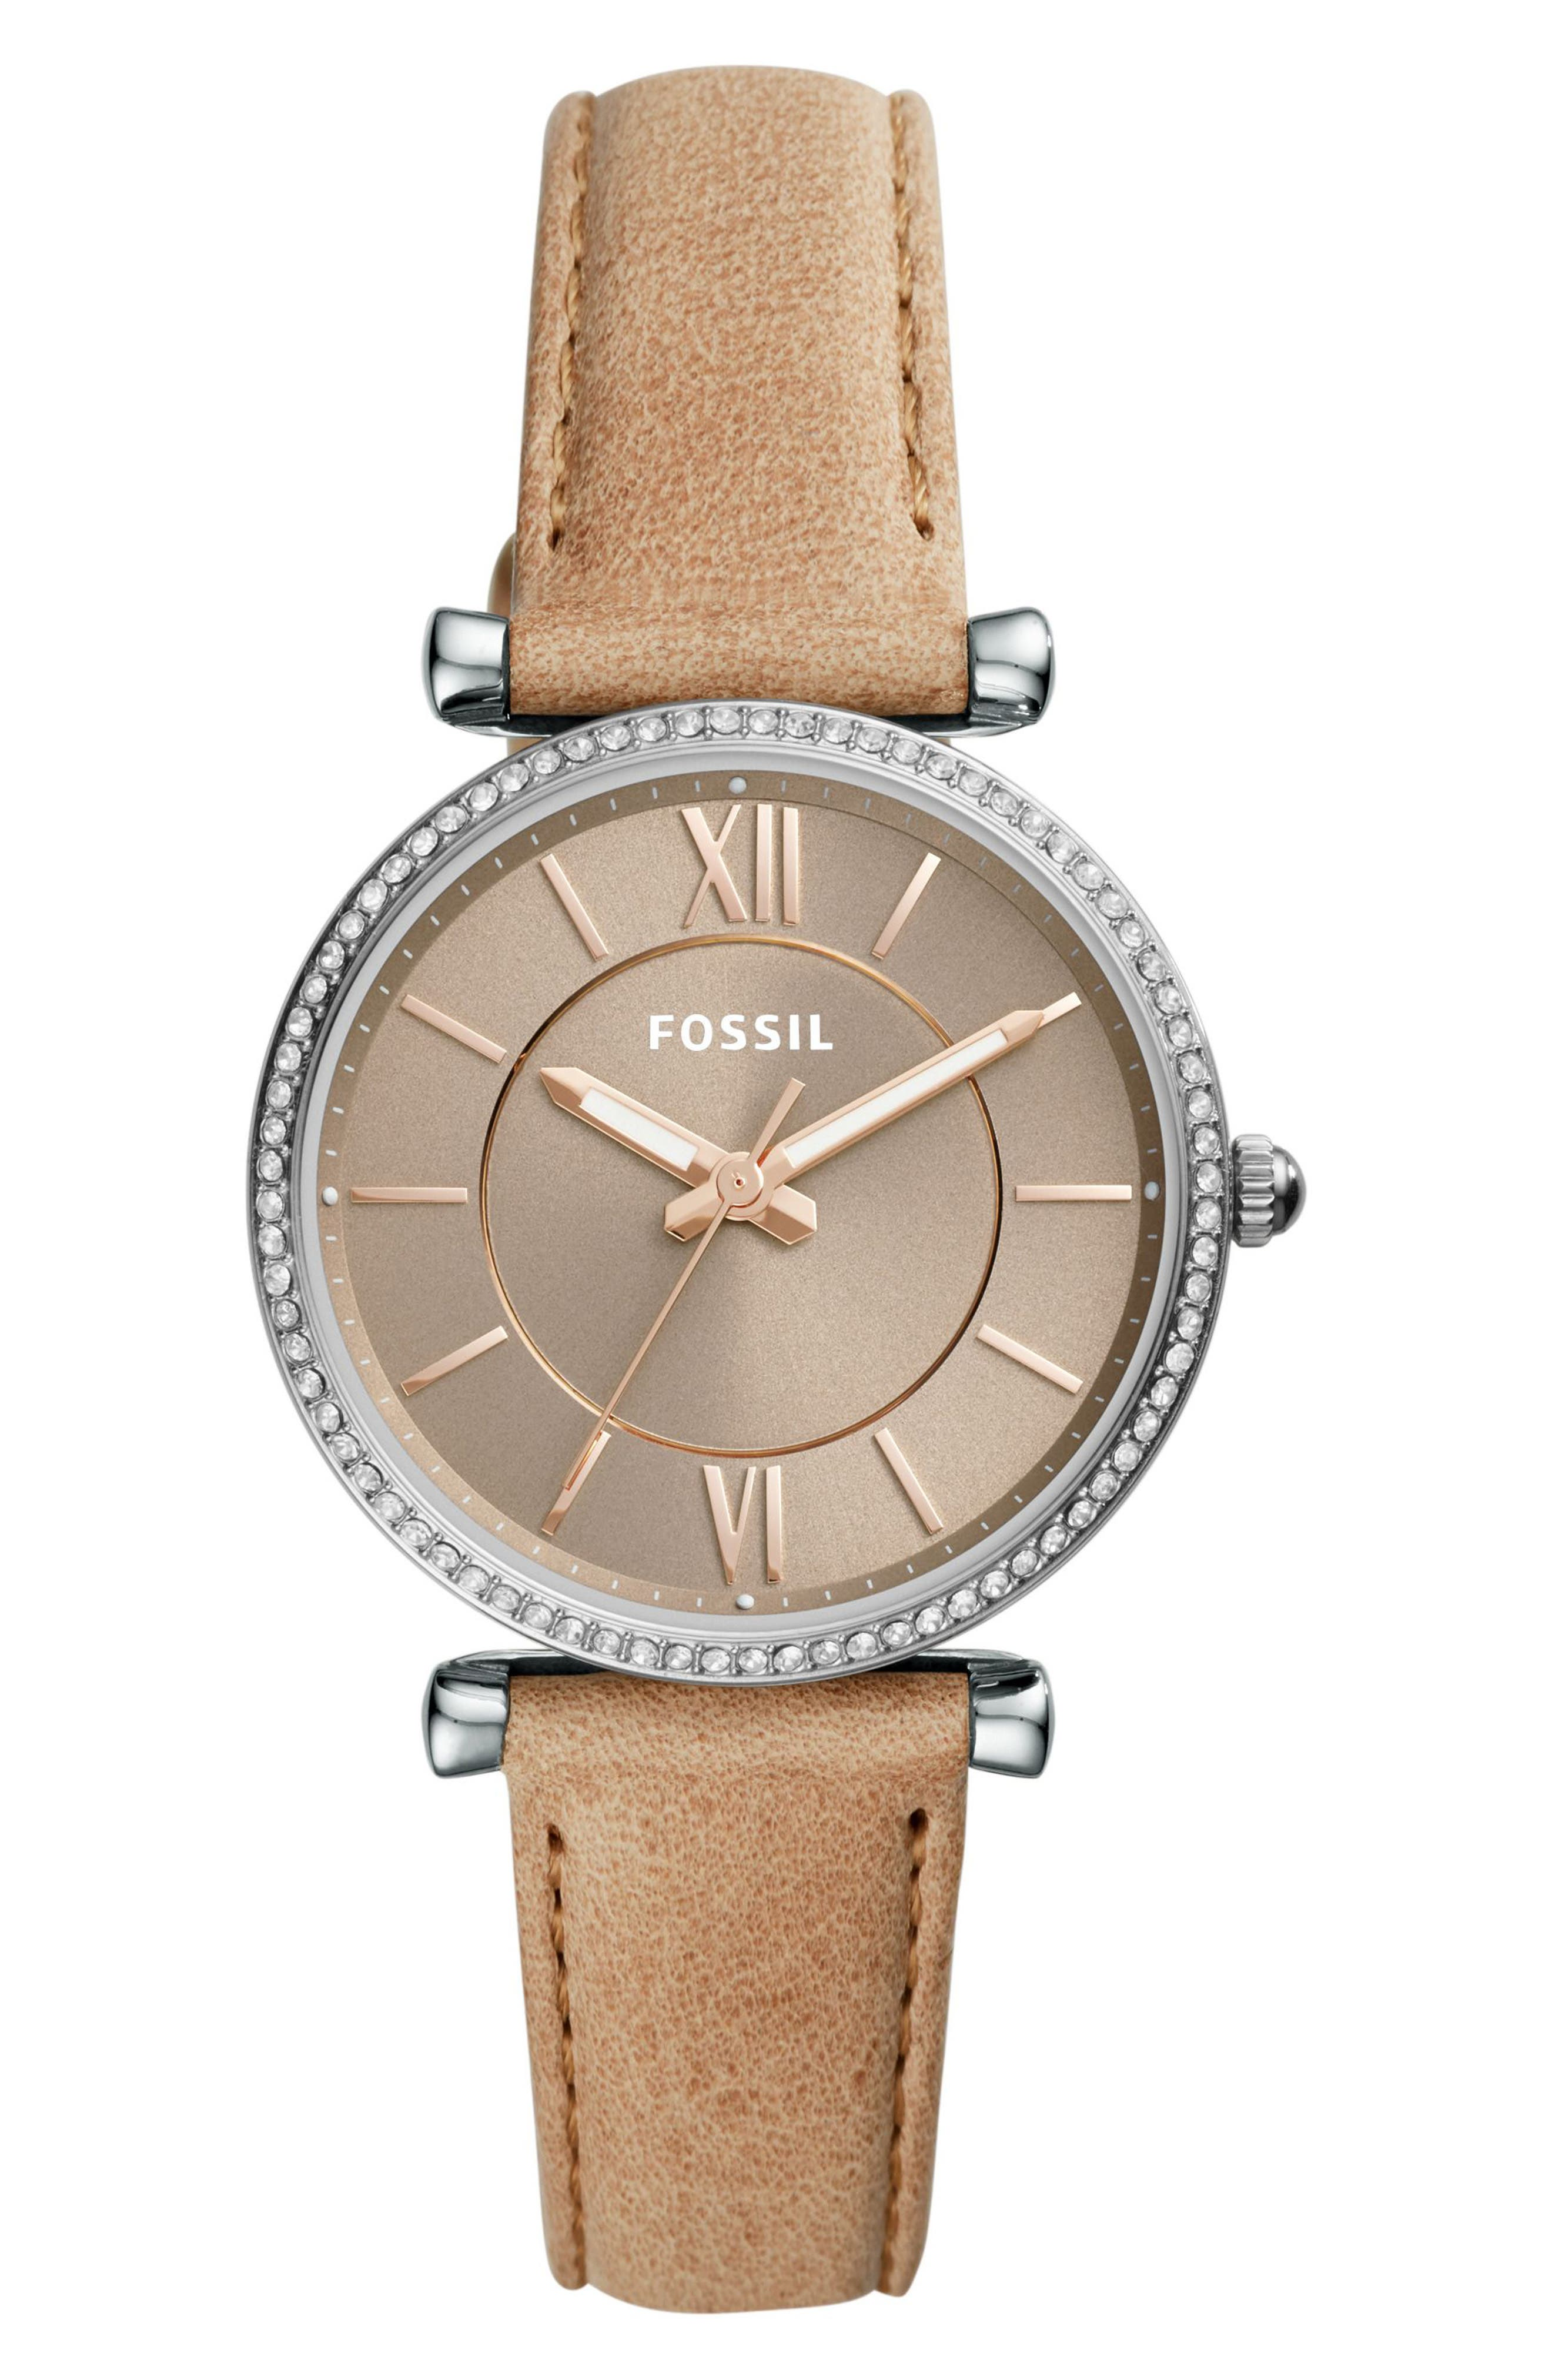 FOSSIL, Carlie T-Bar Crystal Leather Strap Watch, 35mm, Main thumbnail 1, color, BROWN/ SILVER